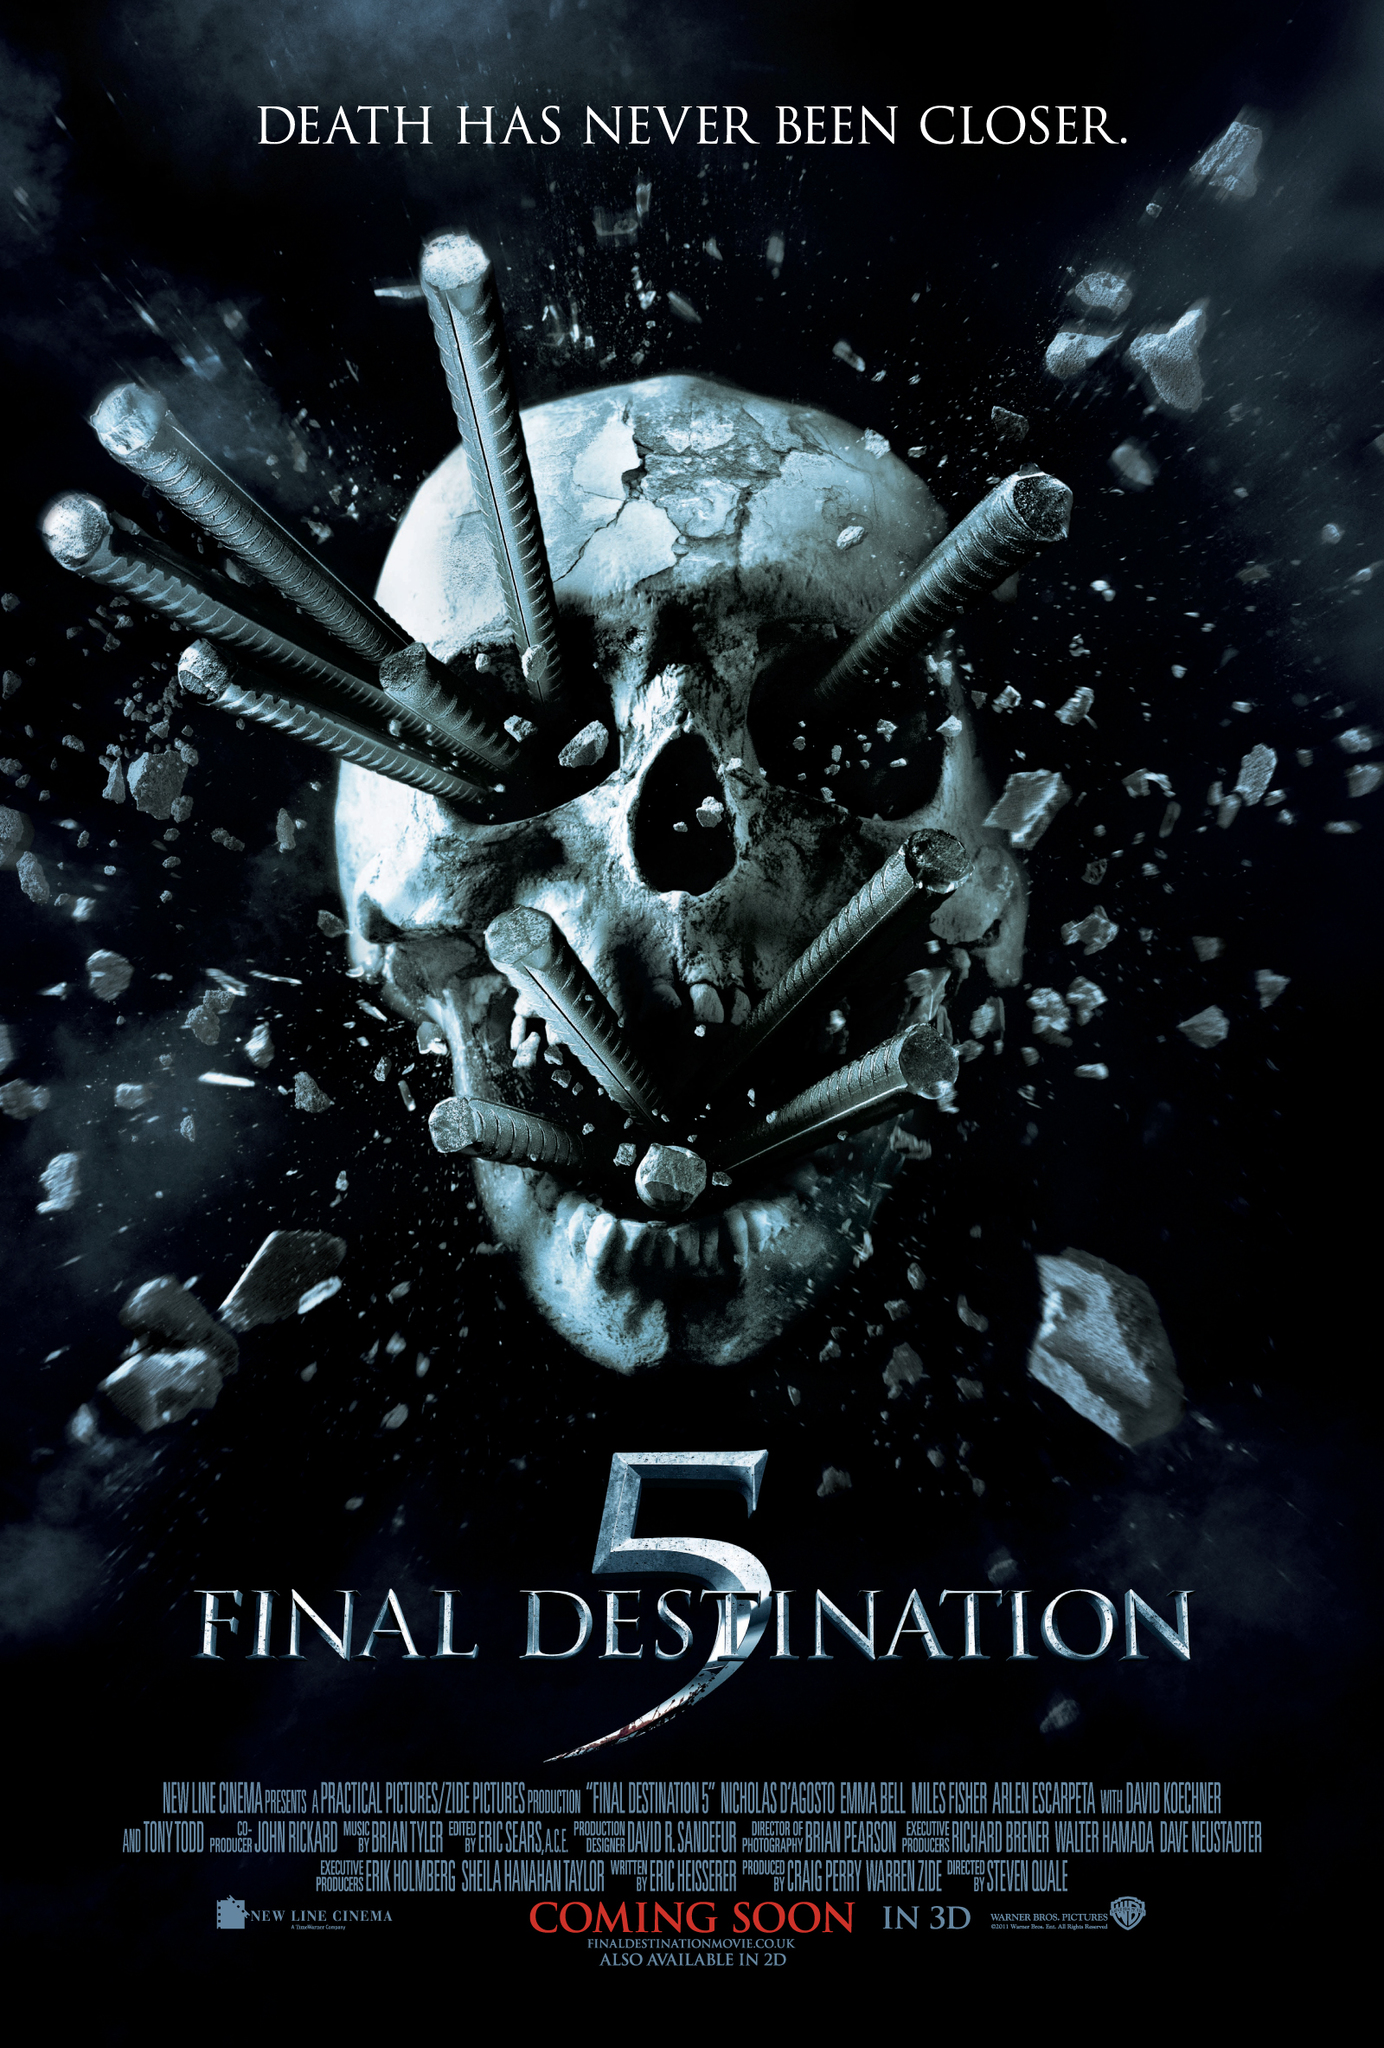 final destination 3 watch full movie online free hd